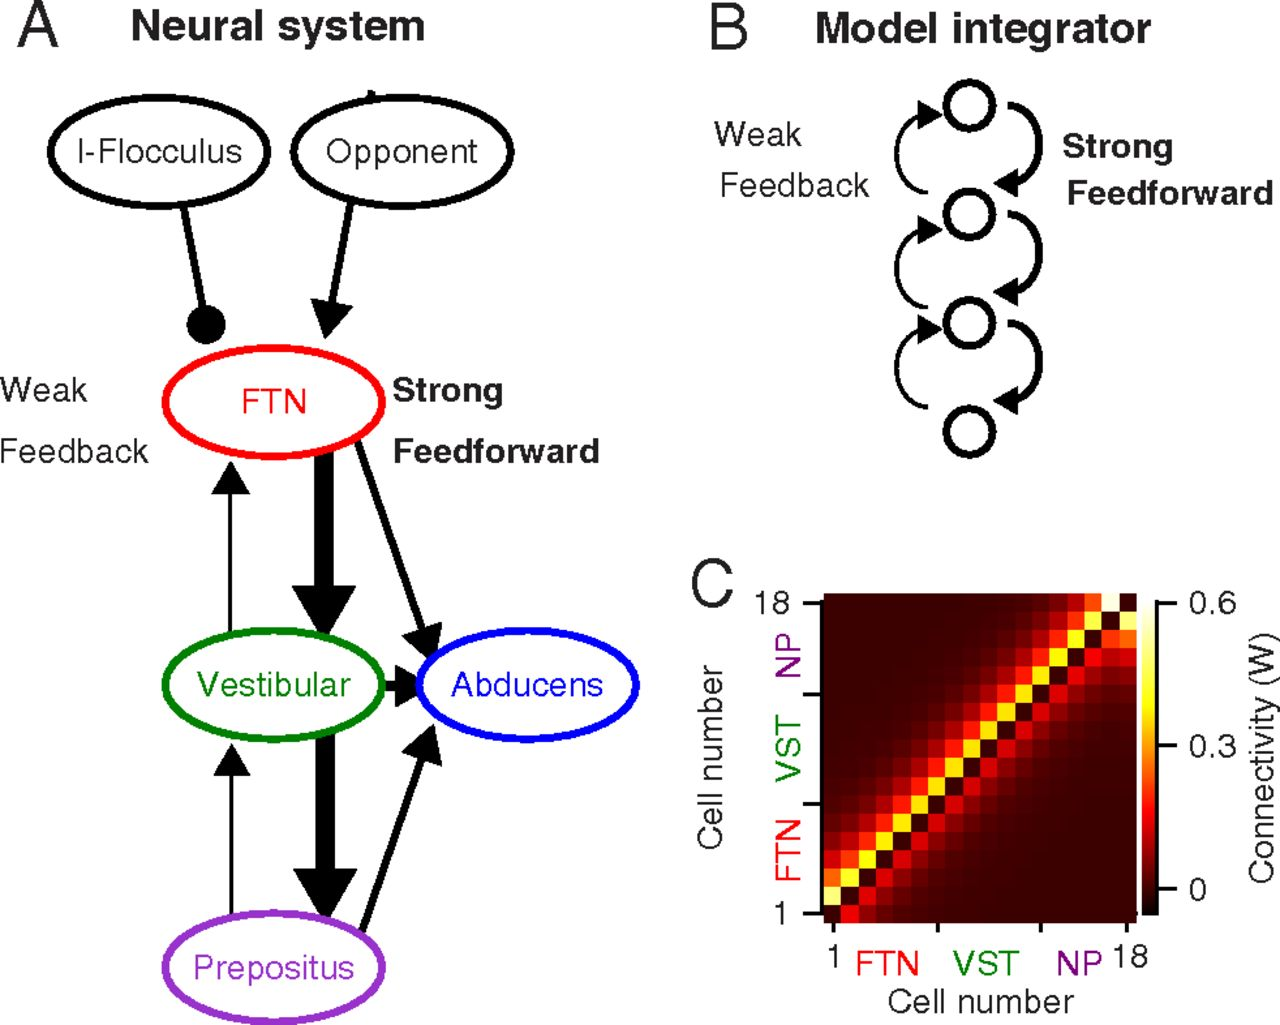 Diversity Of Neural Responses In The Brainstem During Smooth Pursuit An Integrator How Can We Explain This Difference Circuit Download Figure